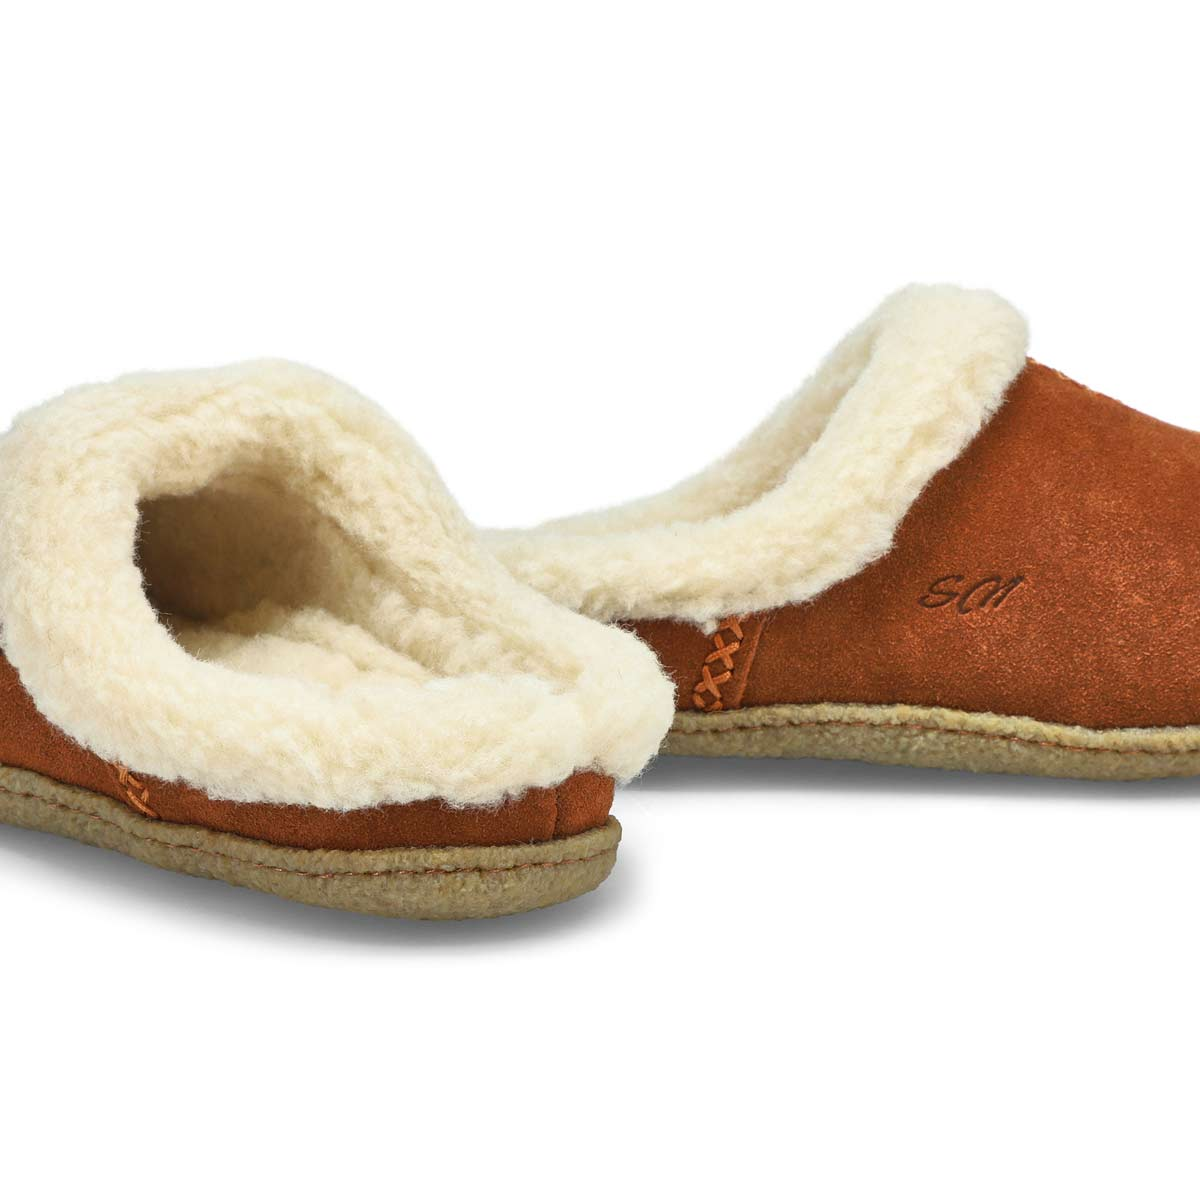 Lds Jupiter spice open back slipper